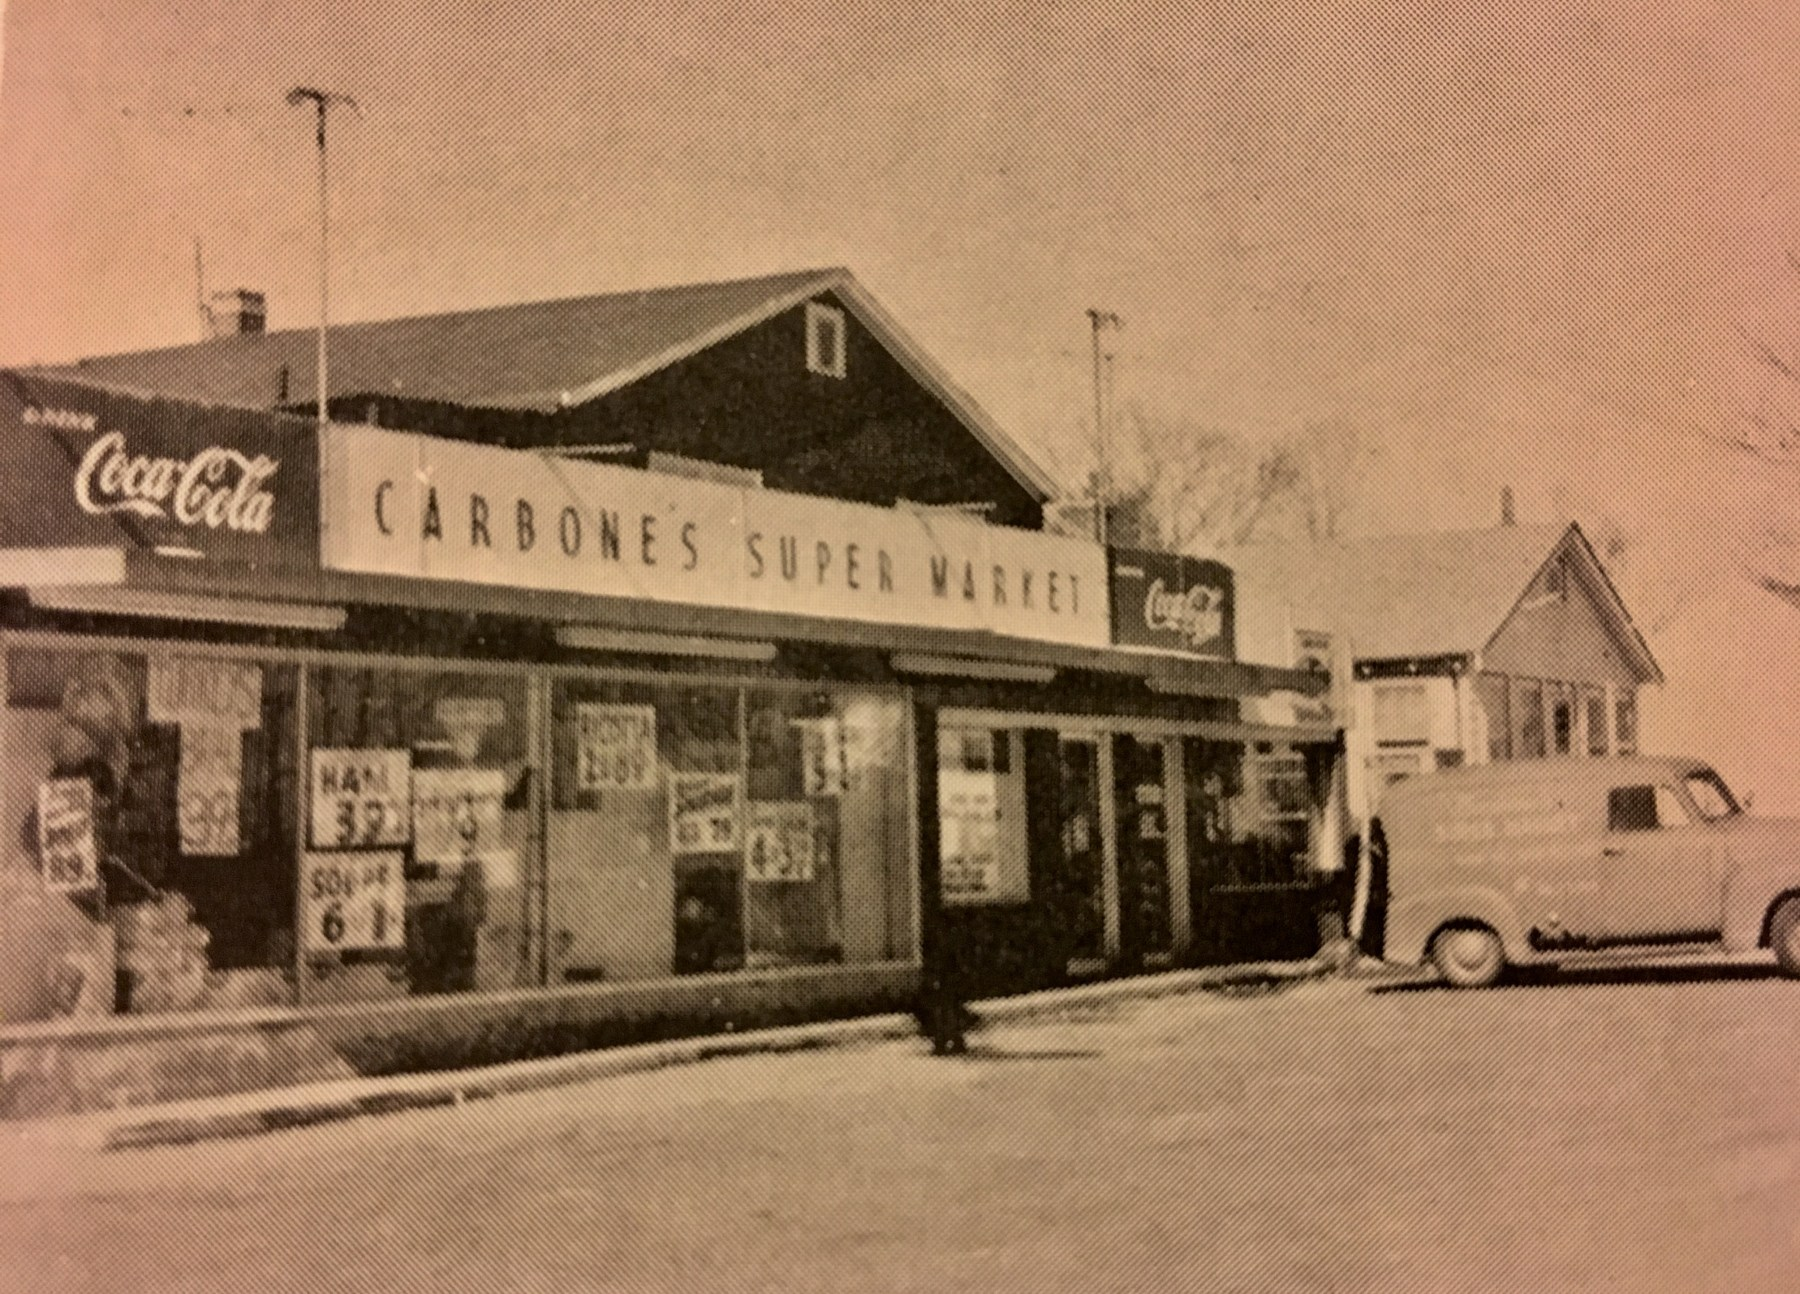 Carbone's Super Market, Burlington, late 1950s